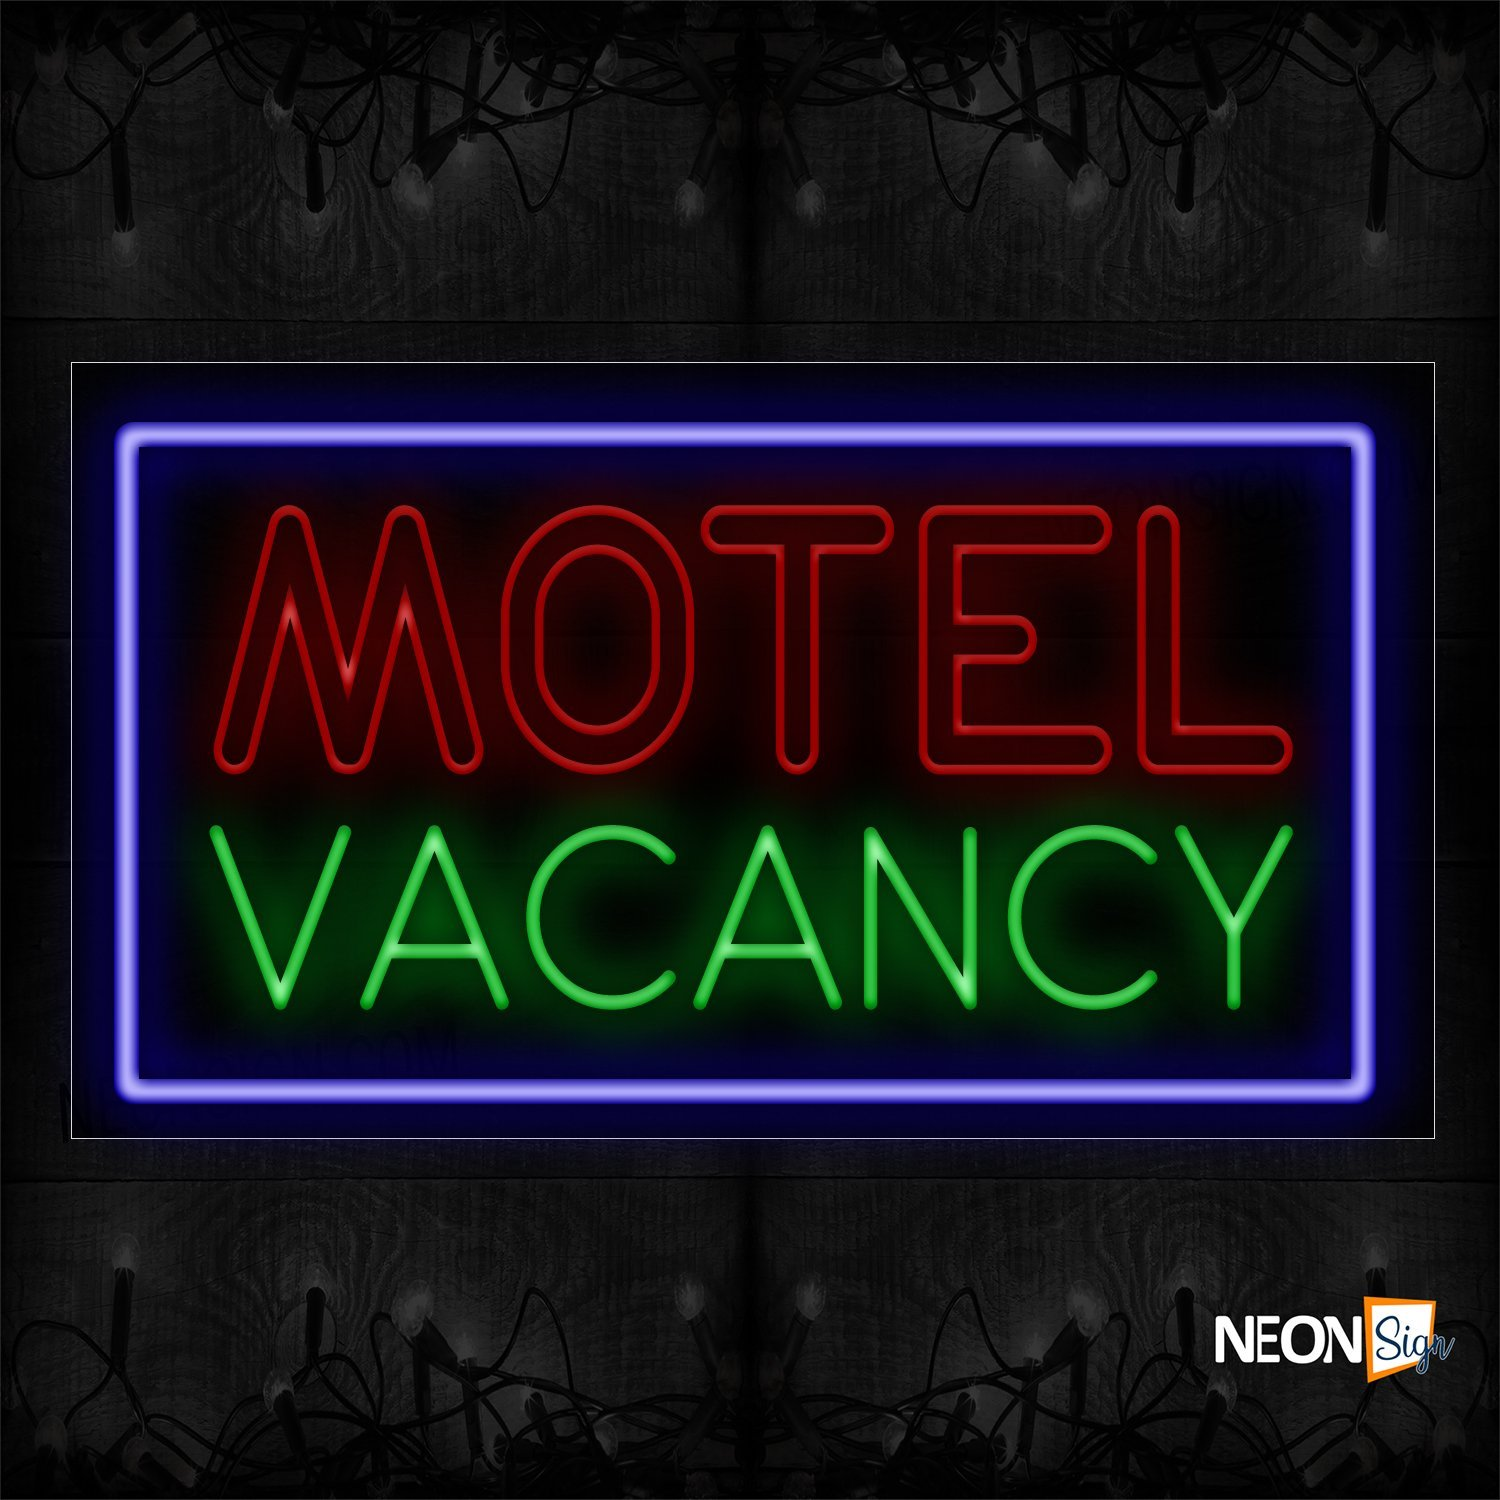 Image of 11749 Double Stroke Motel Vacancy With Blue Border Neon Sign_20x37 Black Backing